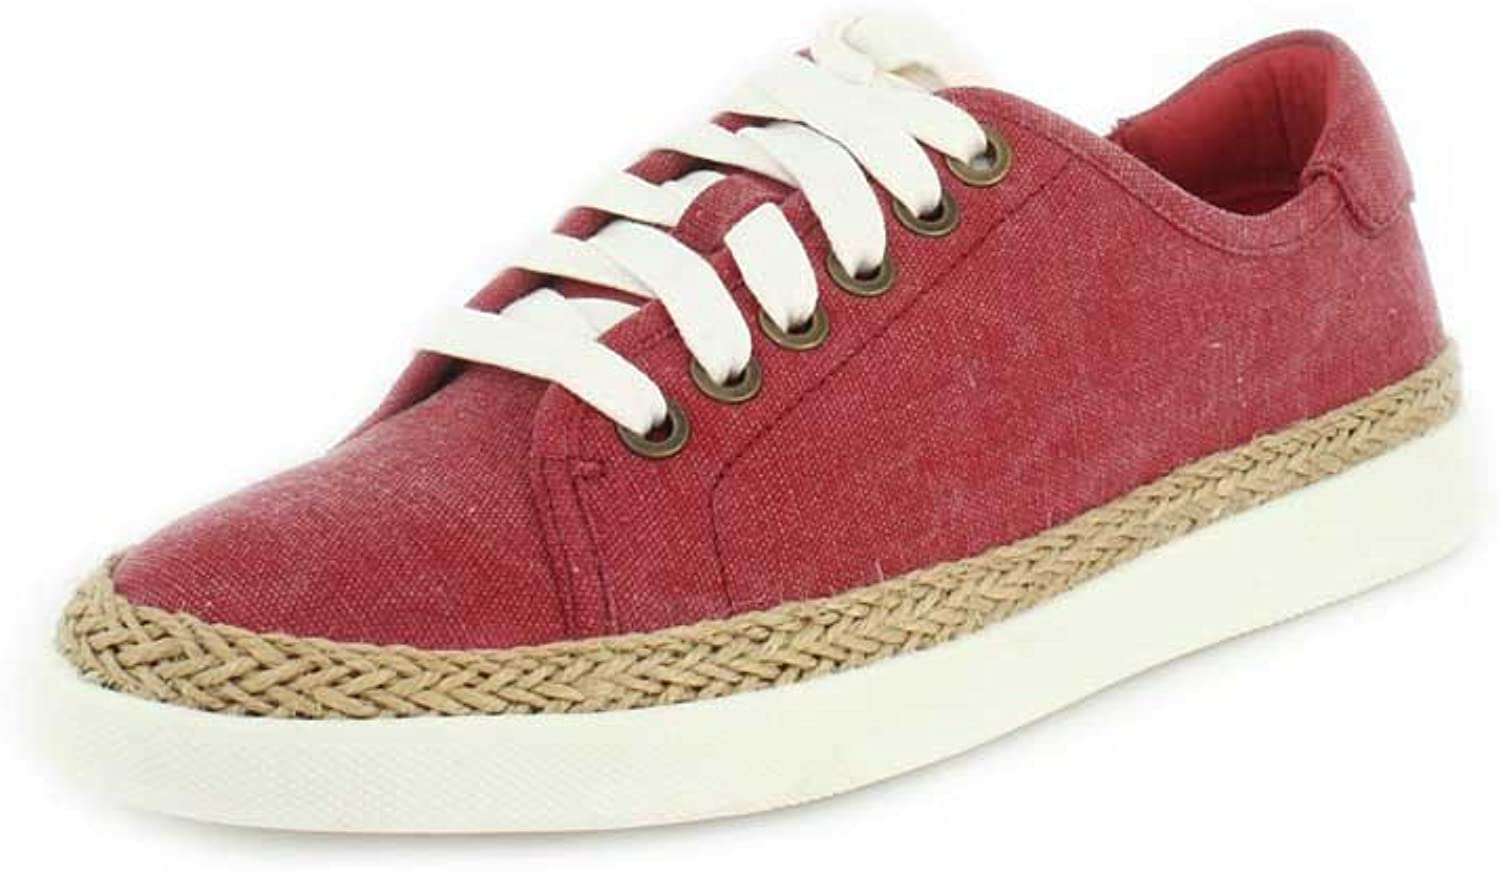 Vionic Women's Hattie Lace Up Sneaker